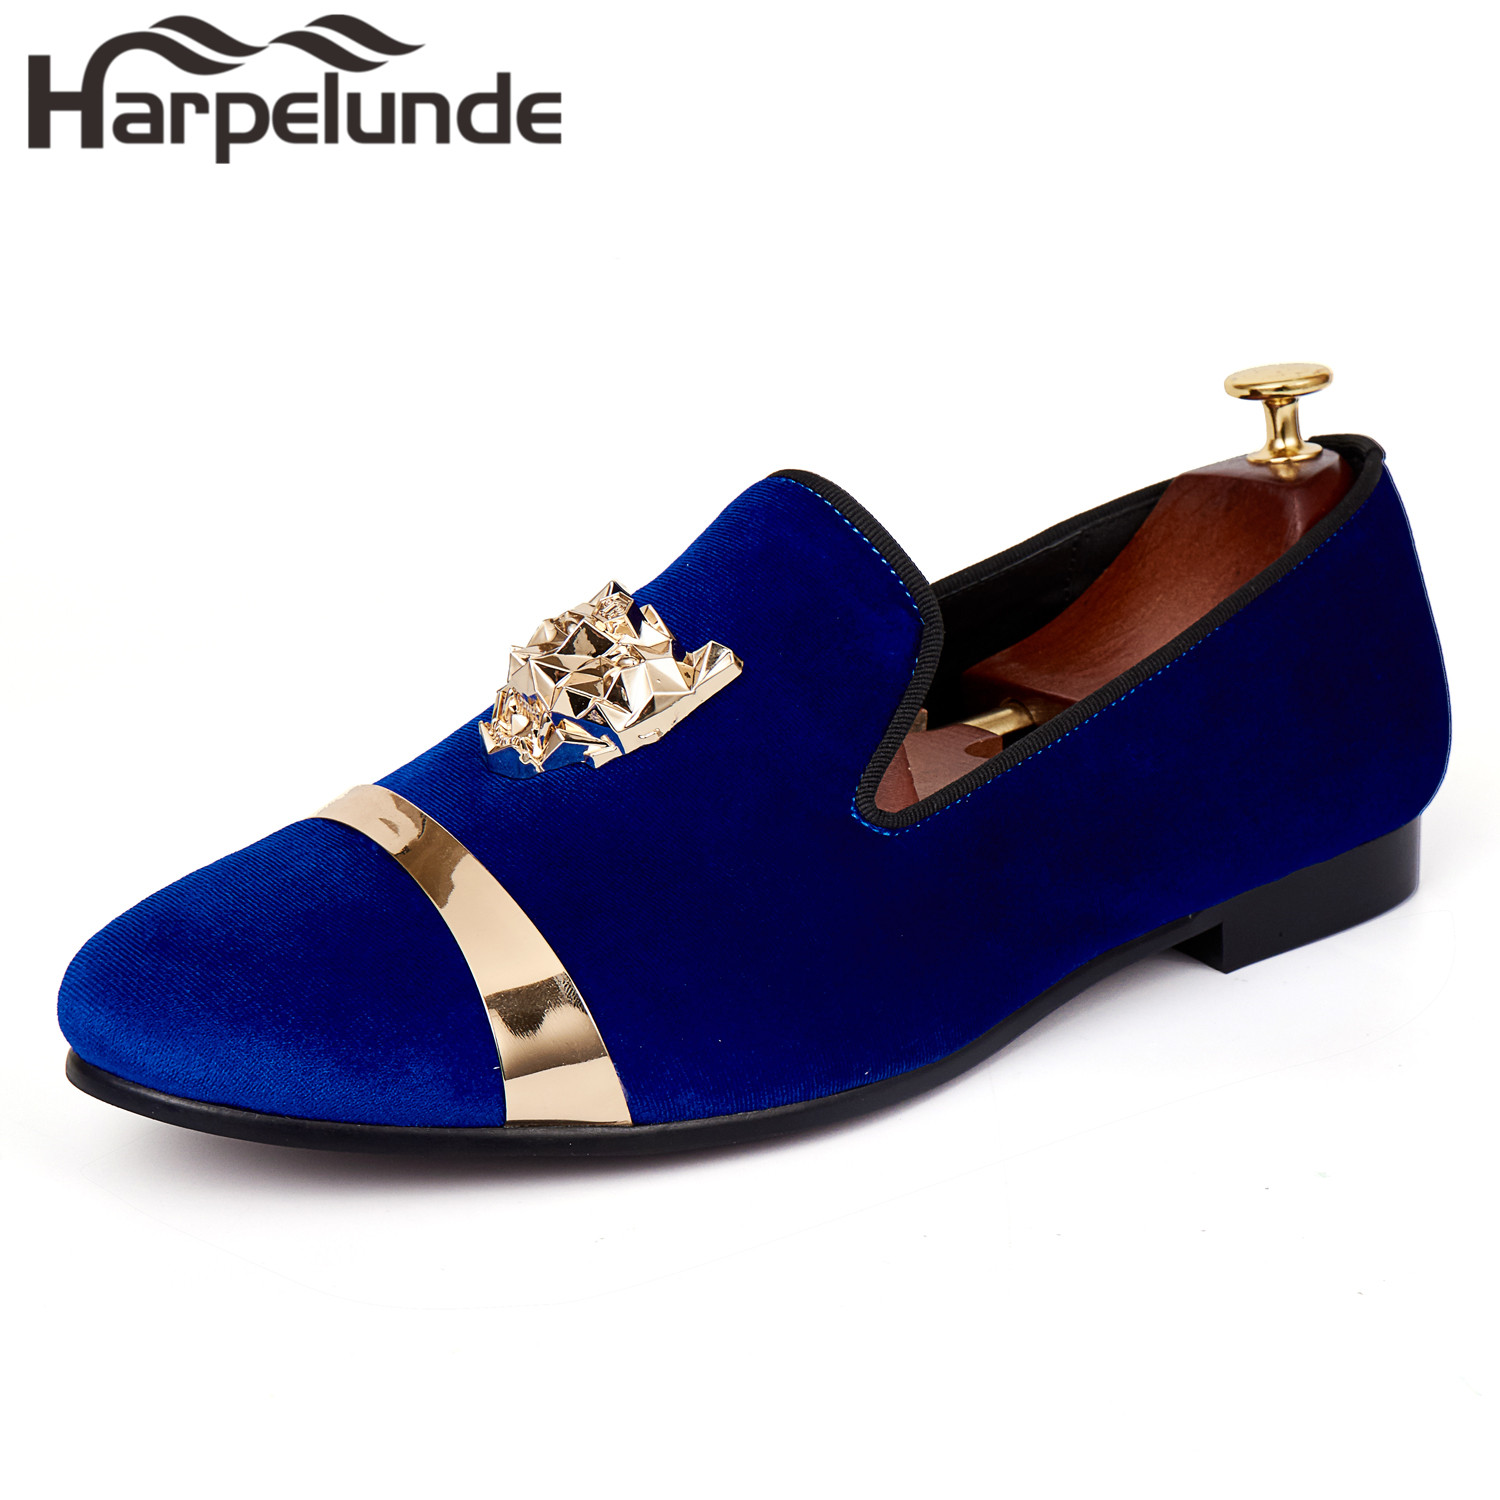 Harpelunde hommes chaussures plates Animal boucle bleu velours robe mocassins avec plaque or taille 6-14